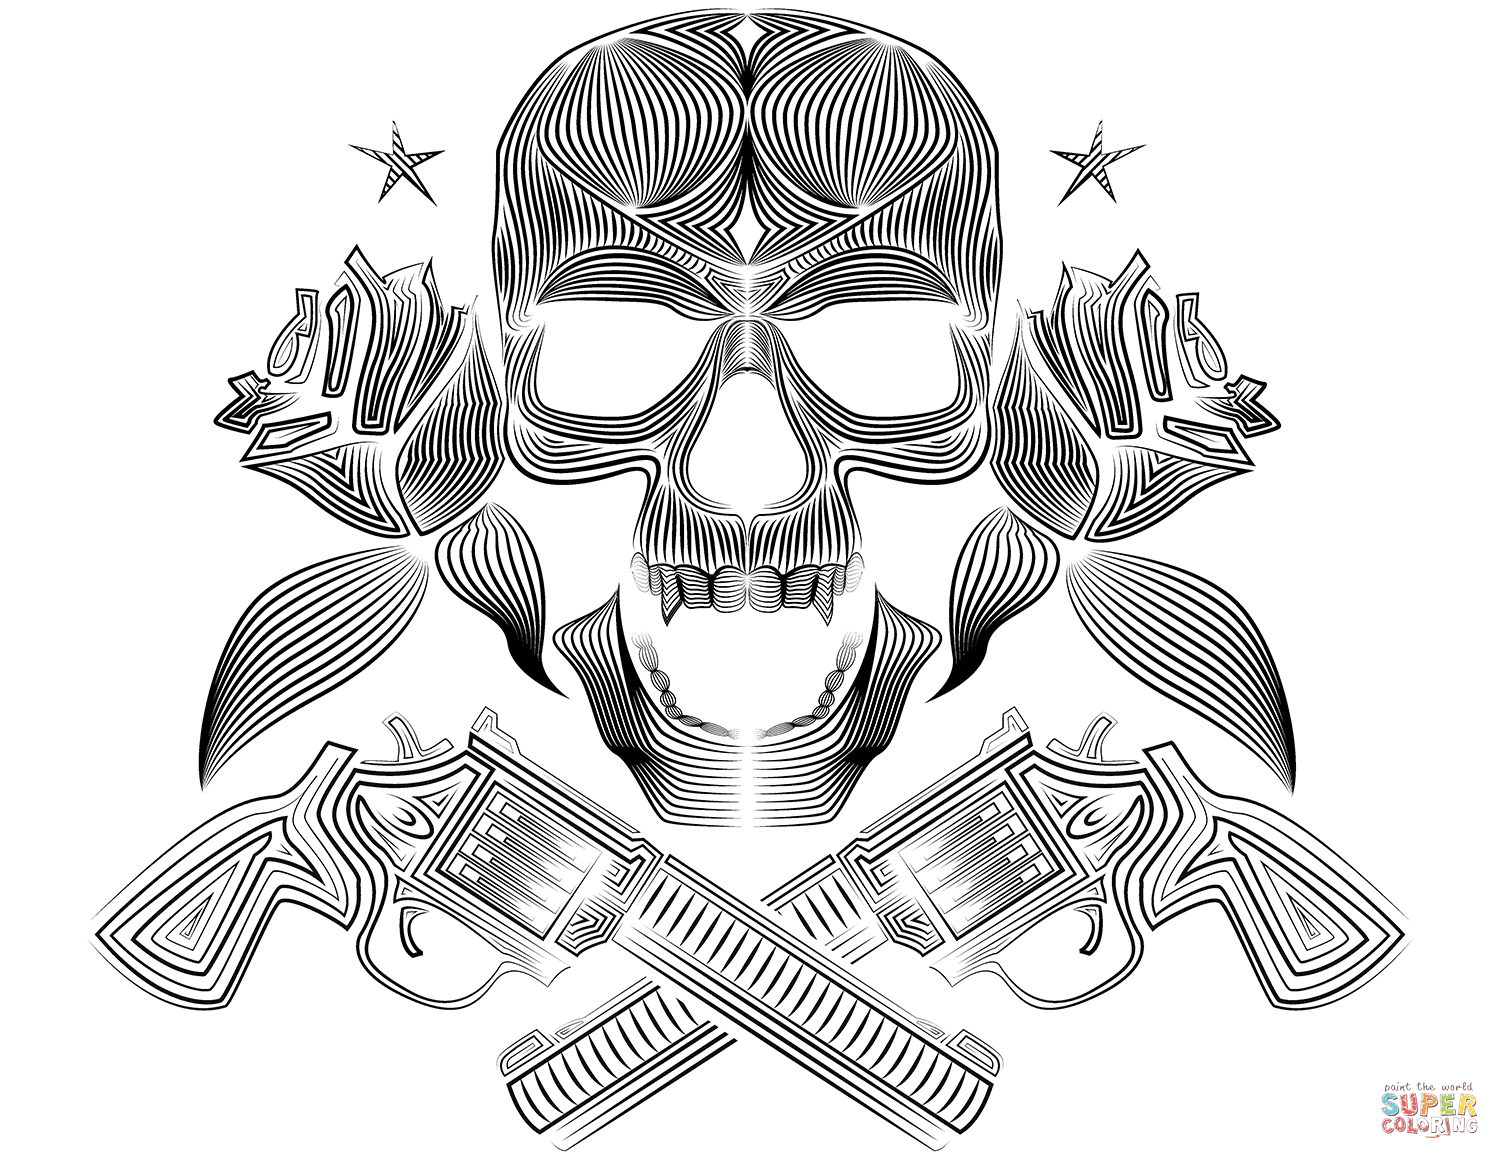 coloring sheet guns and roses coloring pages skull roses and guns coloring page free printable sheet coloring and pages coloring guns roses